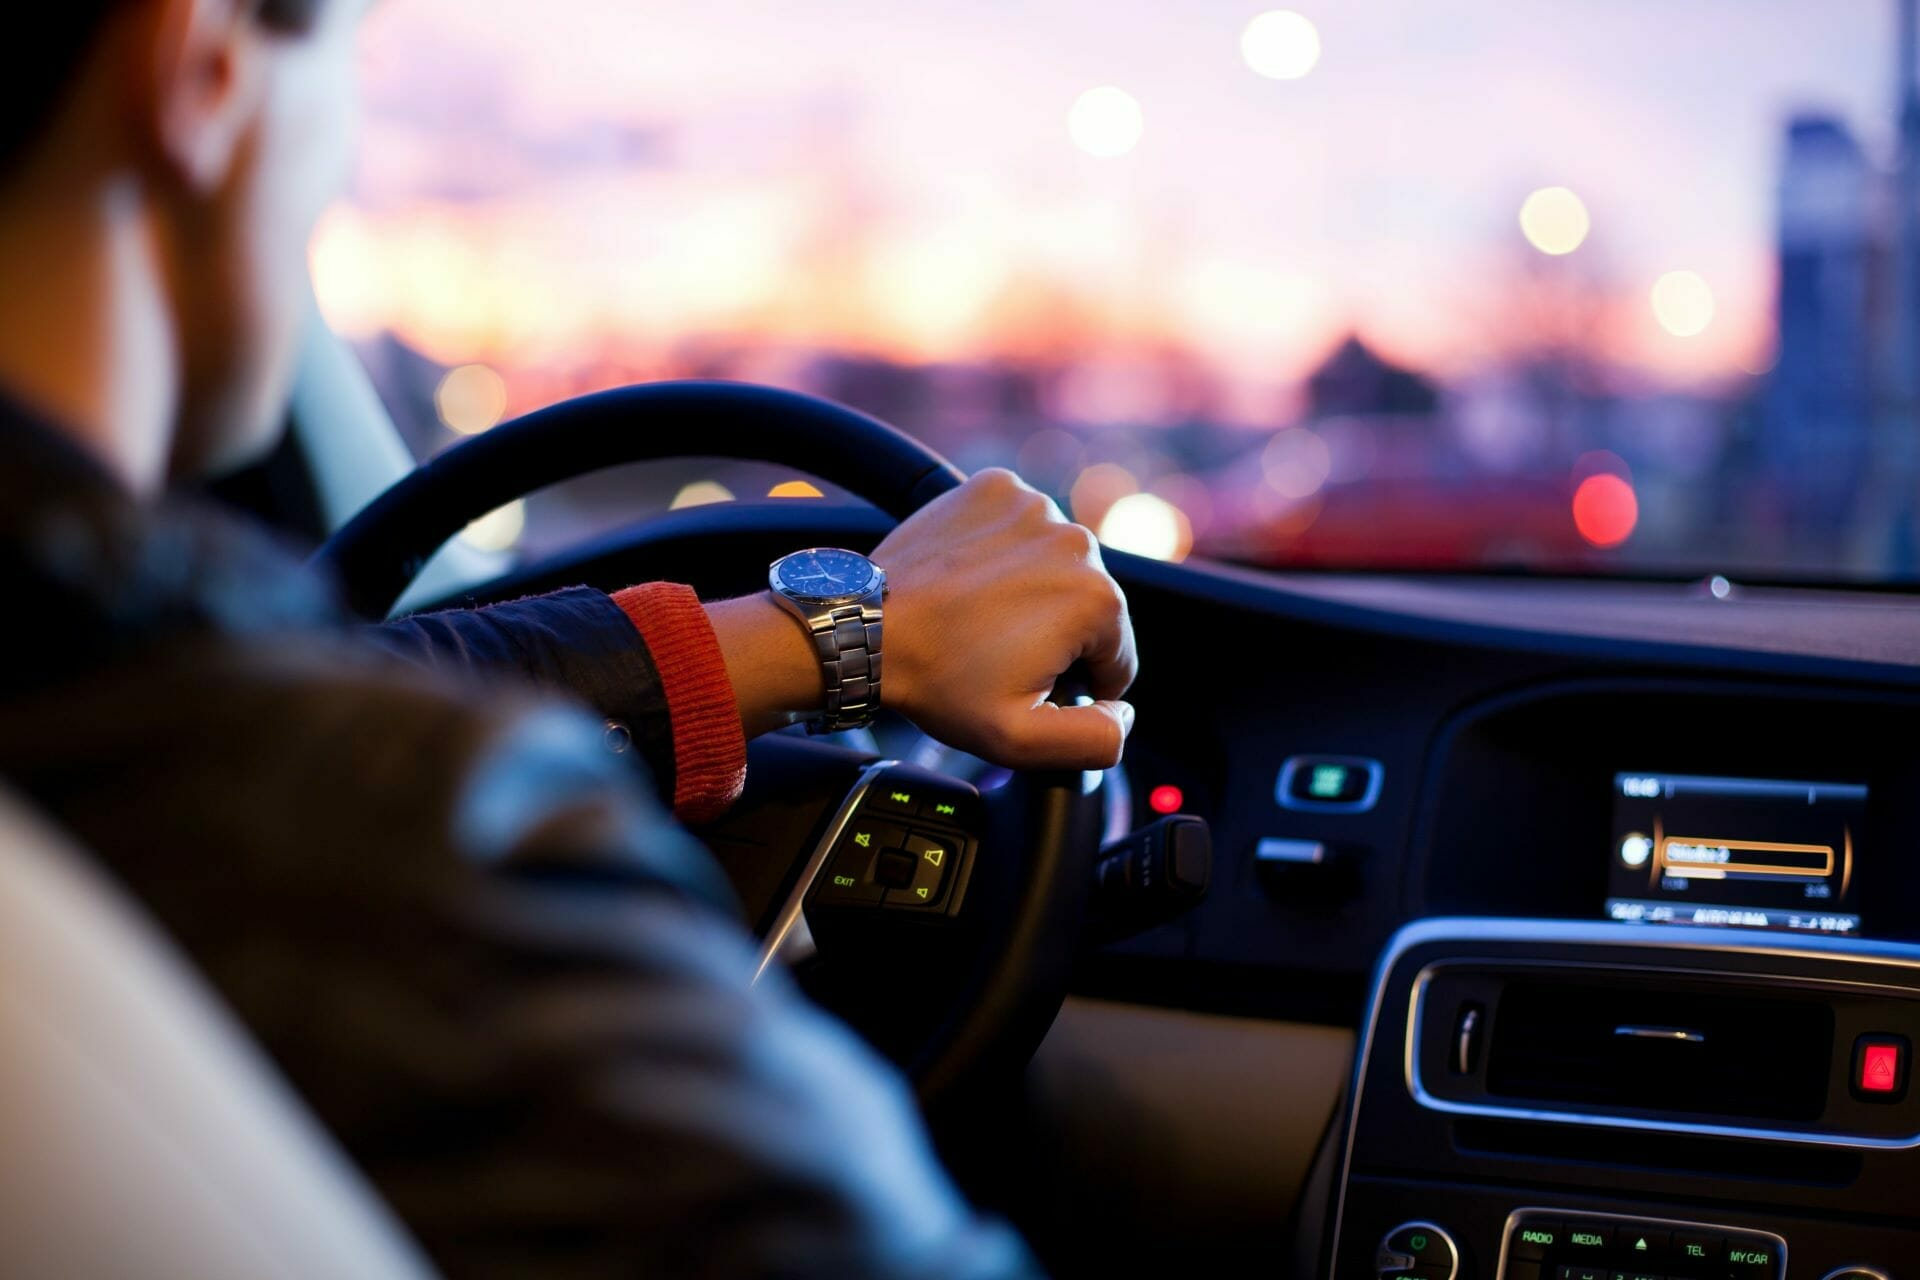 8 Productive Things to Do in the Car via @allamericanatlas